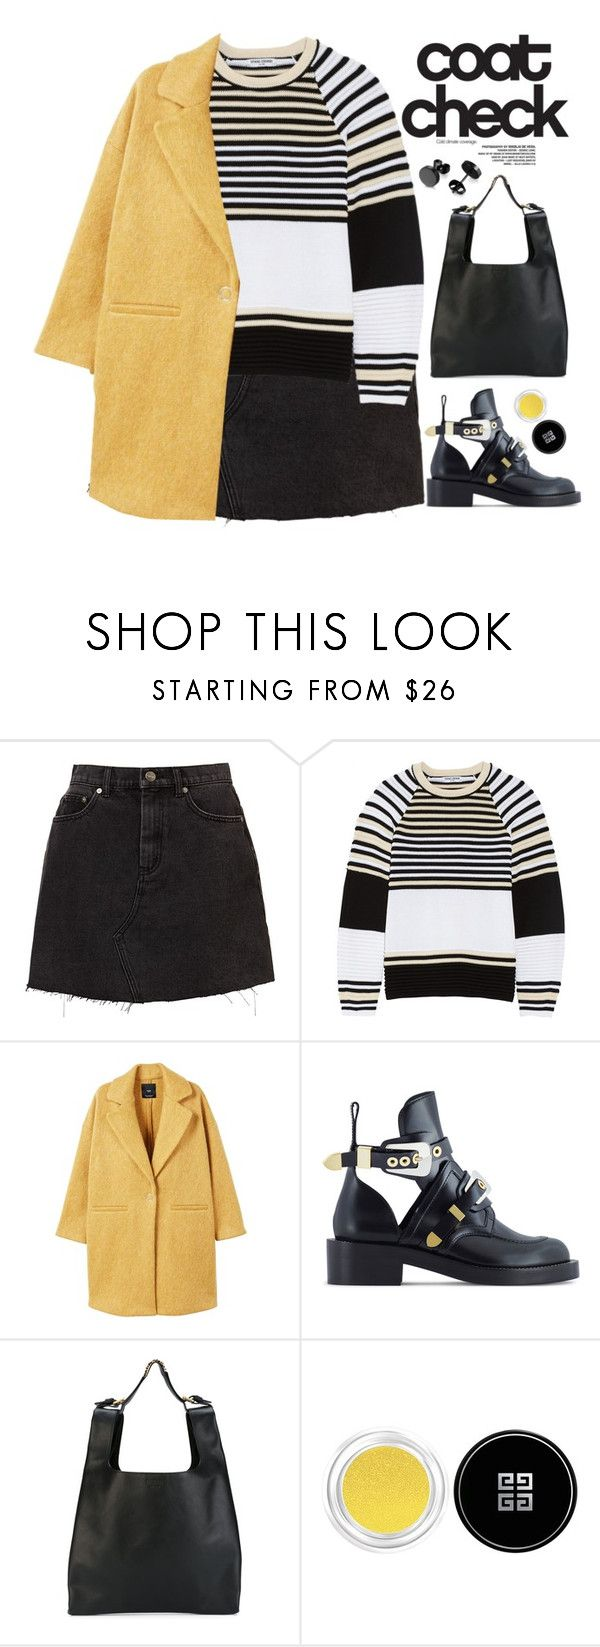 """""""COAT CHECK"""" by evangeline-lily on Polyvore featuring Opening Ceremony, MANGO, Balenciaga, Moschino, Givenchy, mango and statementcoats"""